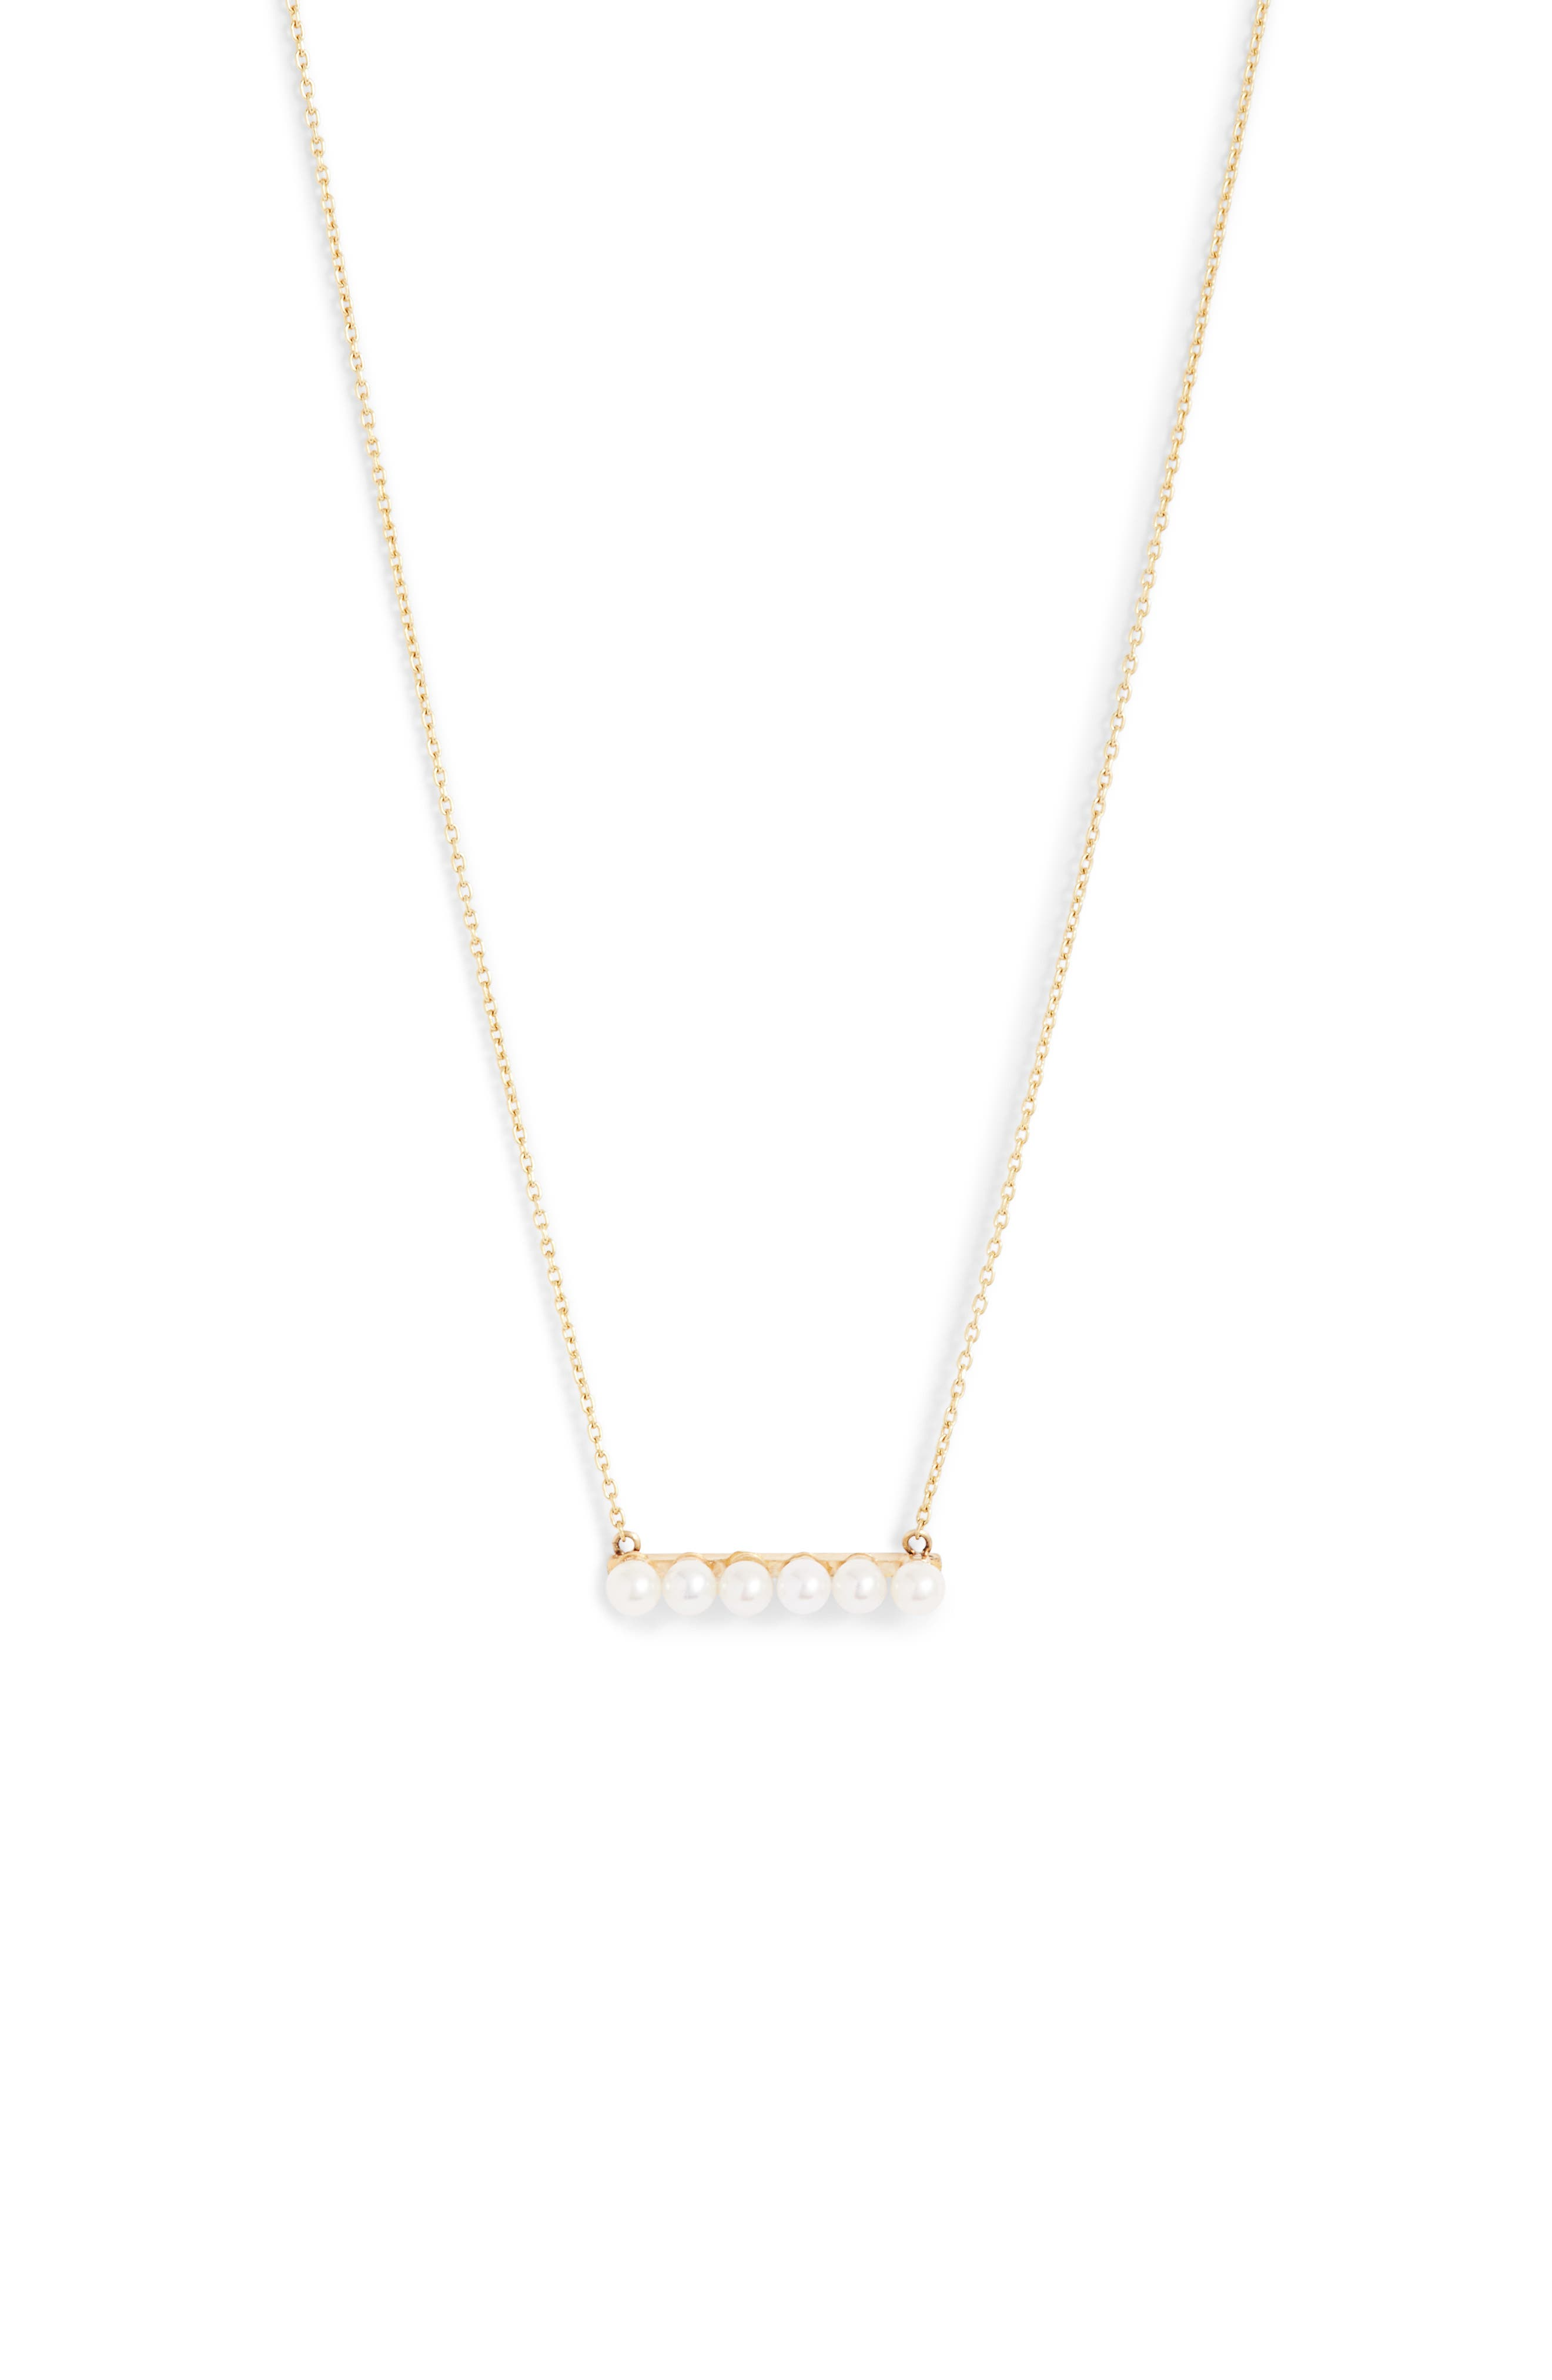 Cultured Baby Pearl Bar Necklace,                             Main thumbnail 1, color,                             YELLOW GOLD/ WHITE PEARL